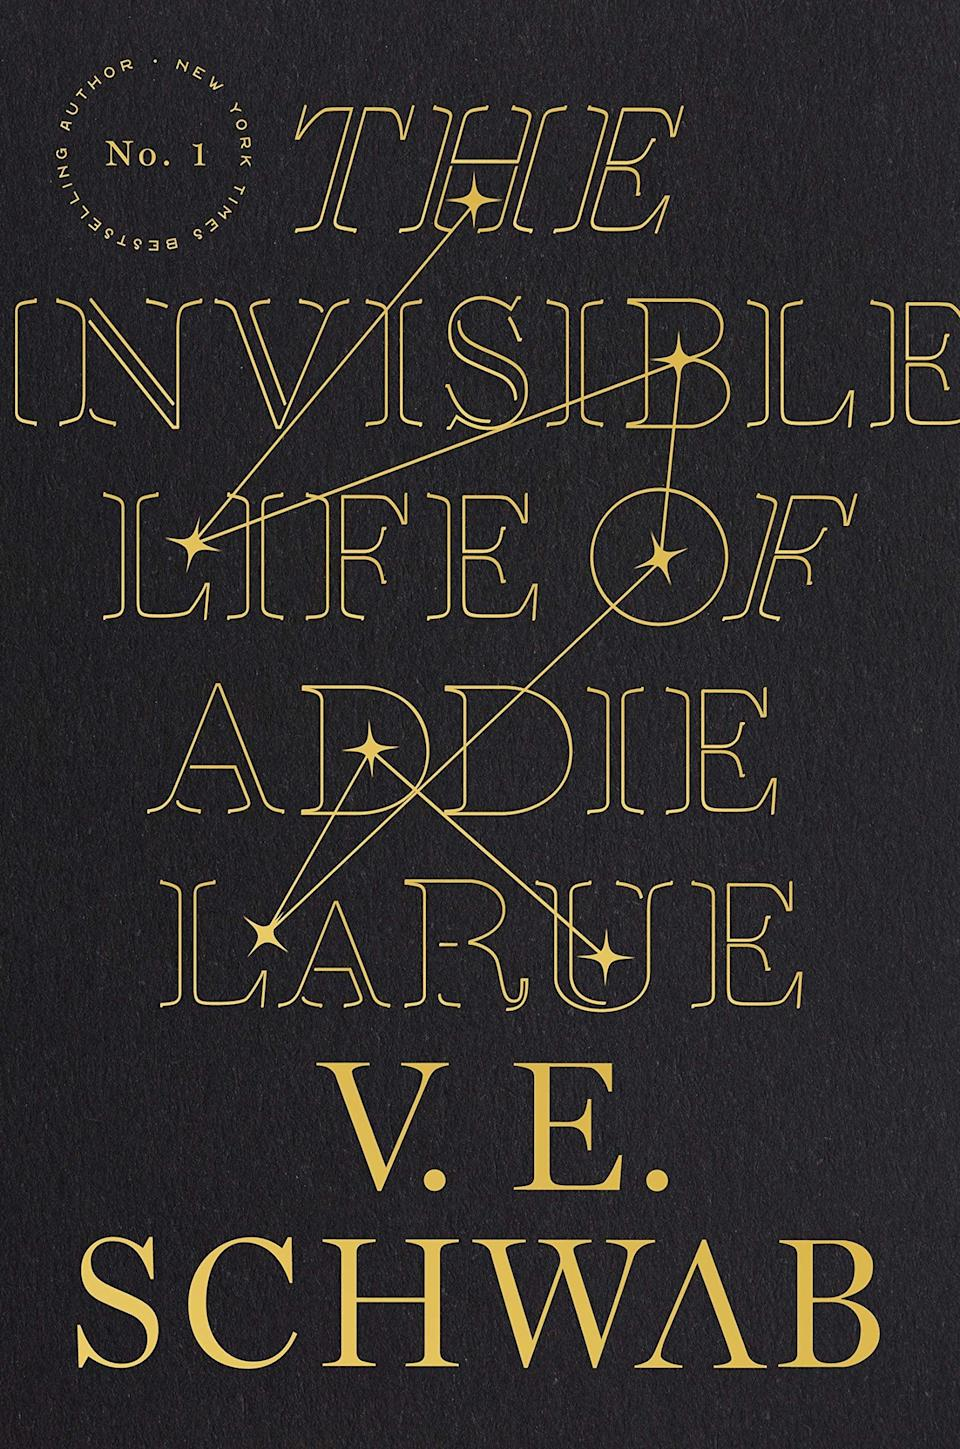 <p>V.E. Schwab's <span><b>The Invisible Life of Addie LaRue</b></span> introduces the captivating idea of immortality with the promise of unexpected romances and fantasy. A young woman named Addie LaRue makes a bargain to gain immortality, which is met with a curse to be forgotten by those she meets - that is, until a young man remembers her name.</p>